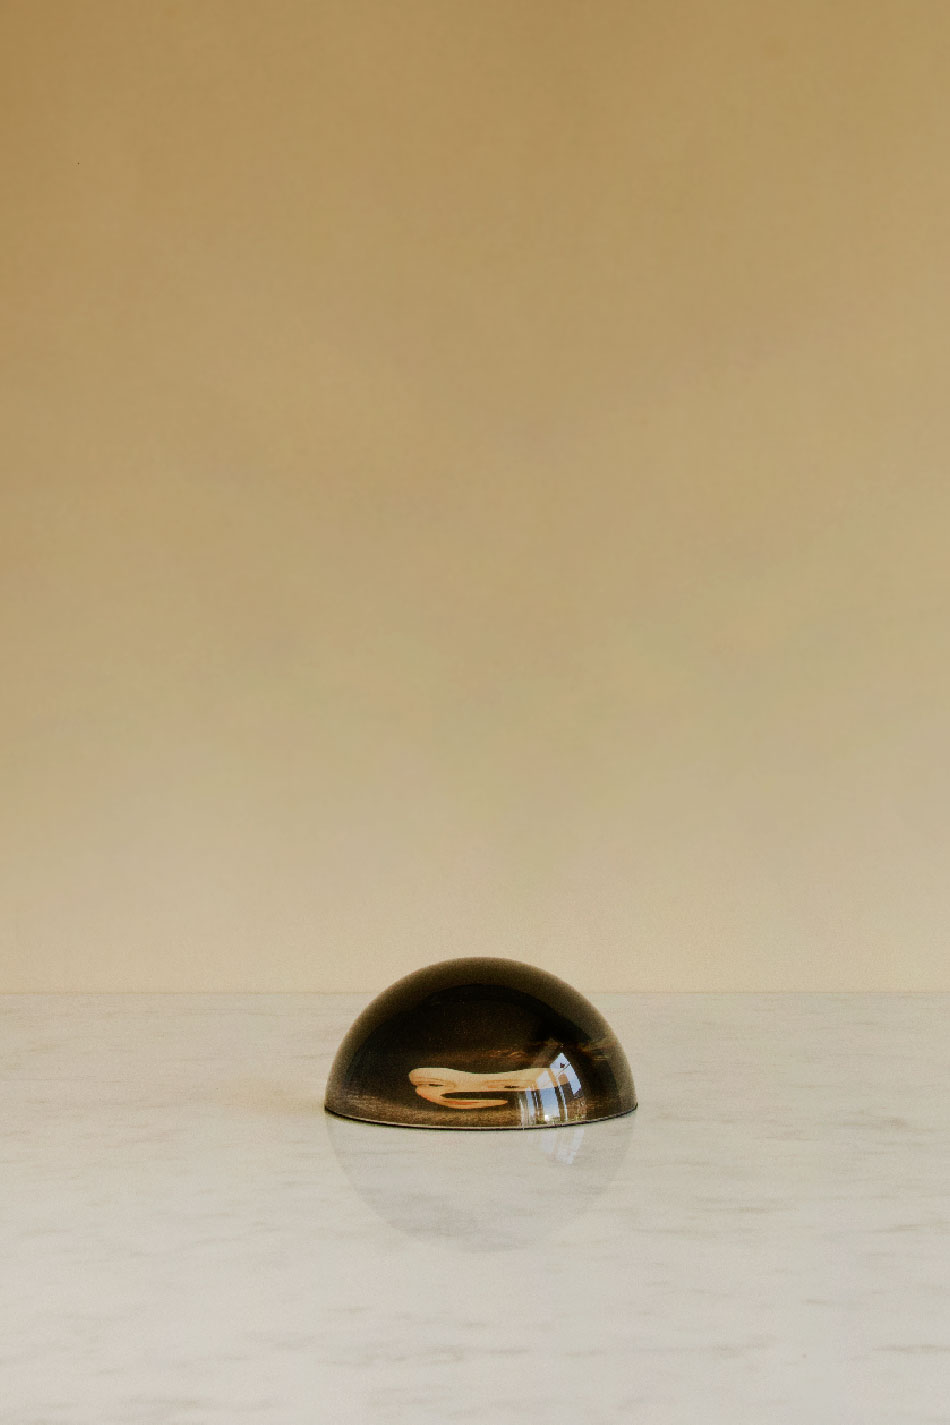 Les Mixures Dome Paperweight